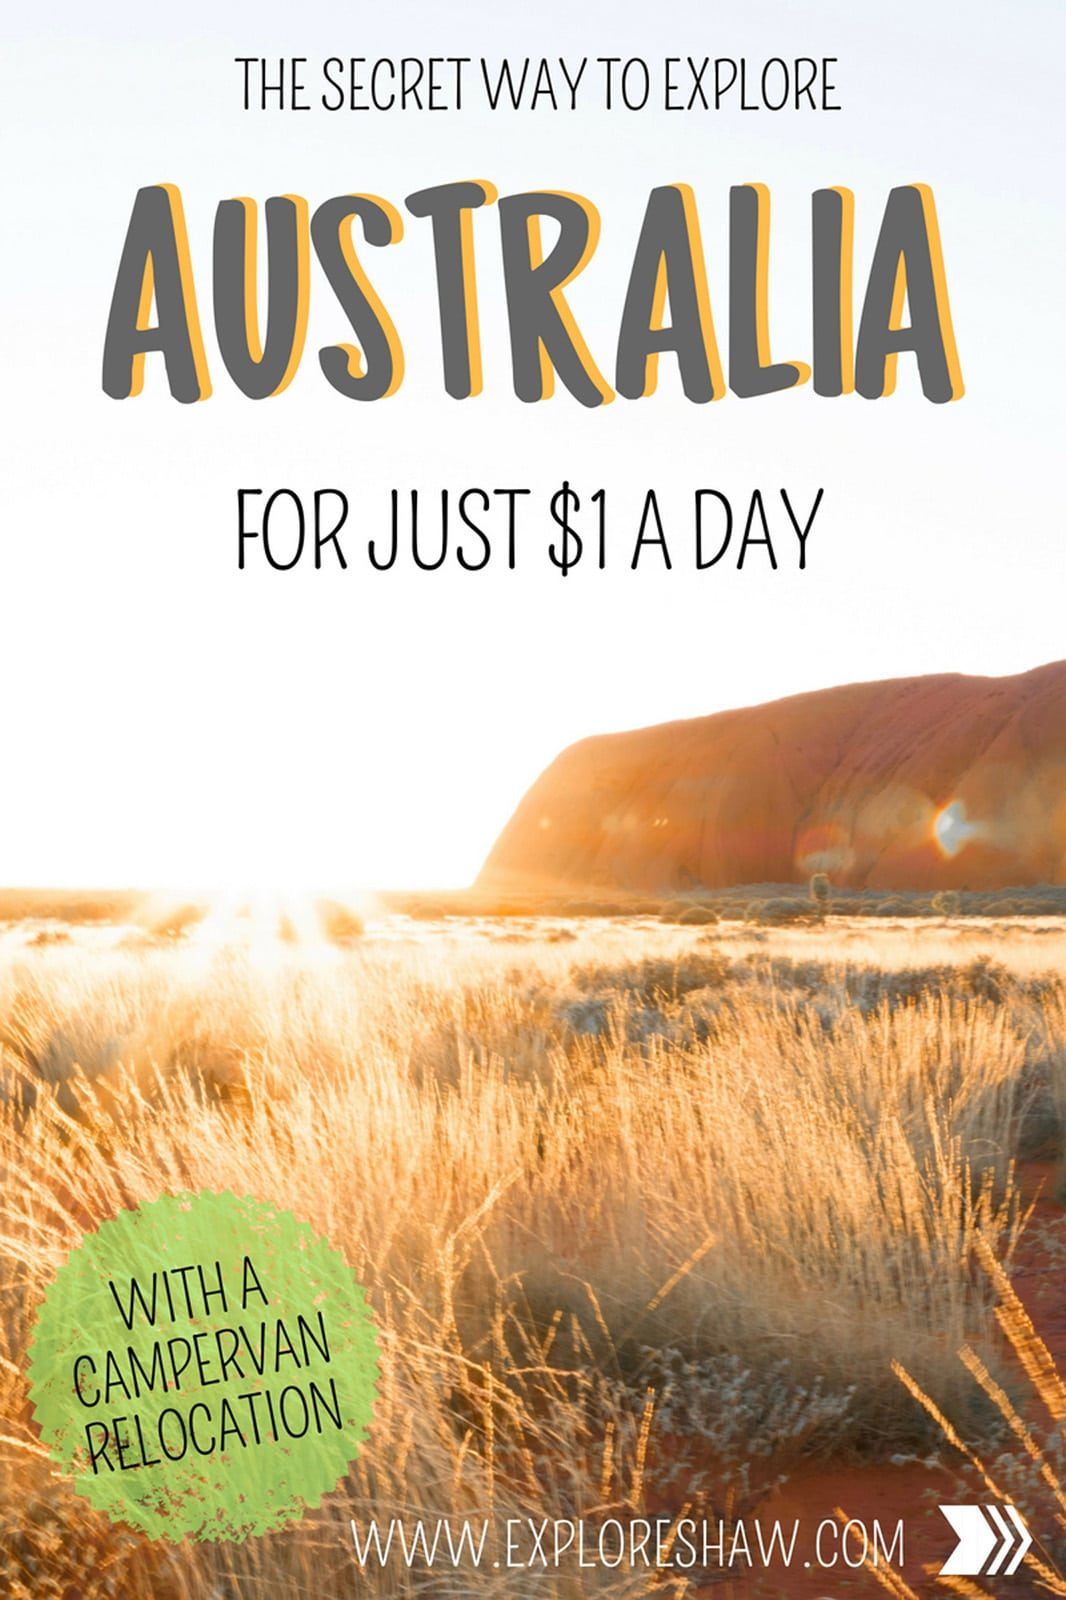 the secret way to explore australia for just $1 a day blog post